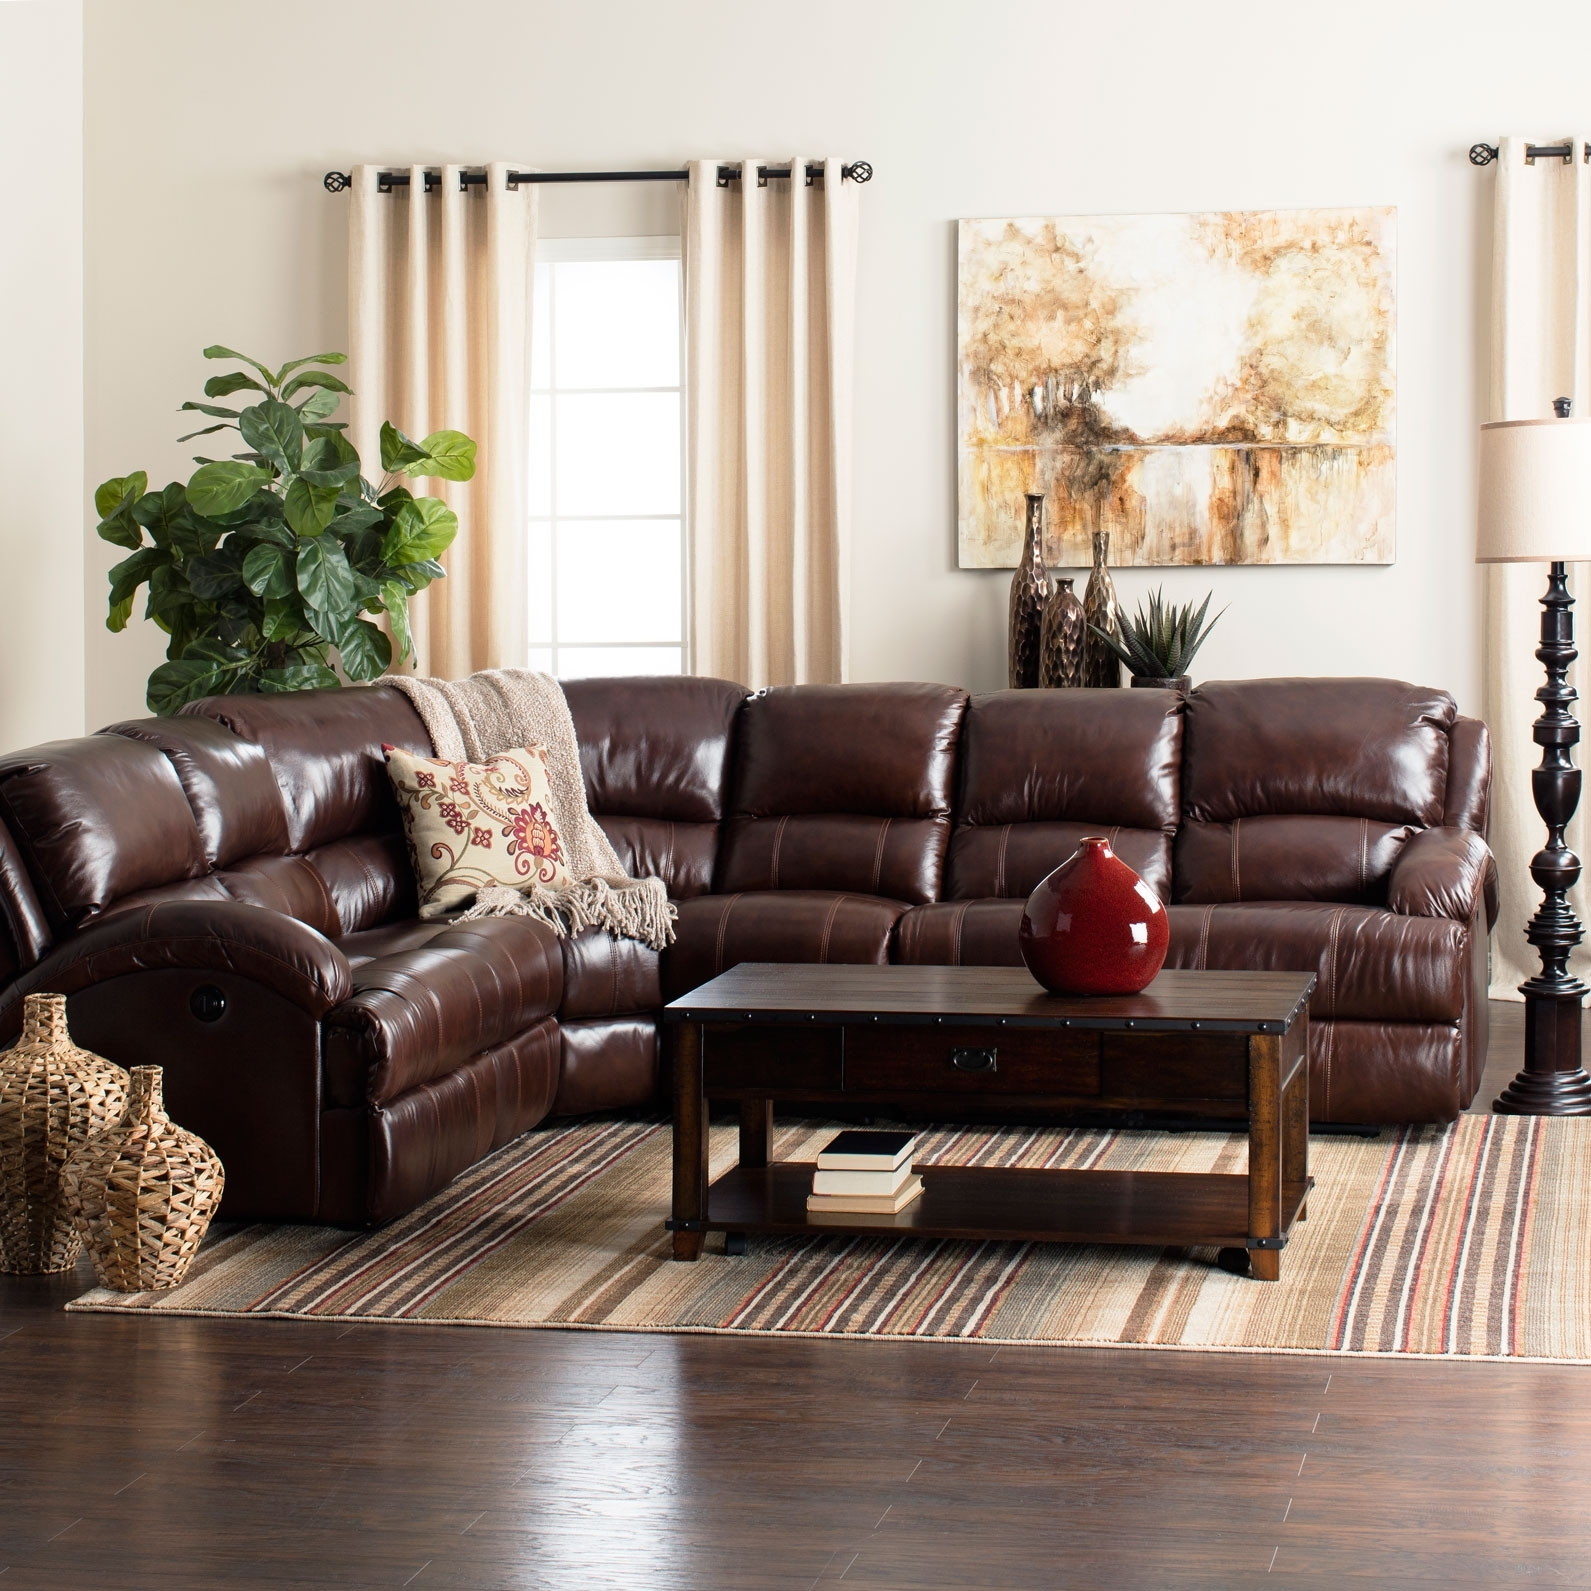 Romero Living Room Sectional Jerome 039 S Furniture: 10 Collection Of Jerome's Sectional Sofas